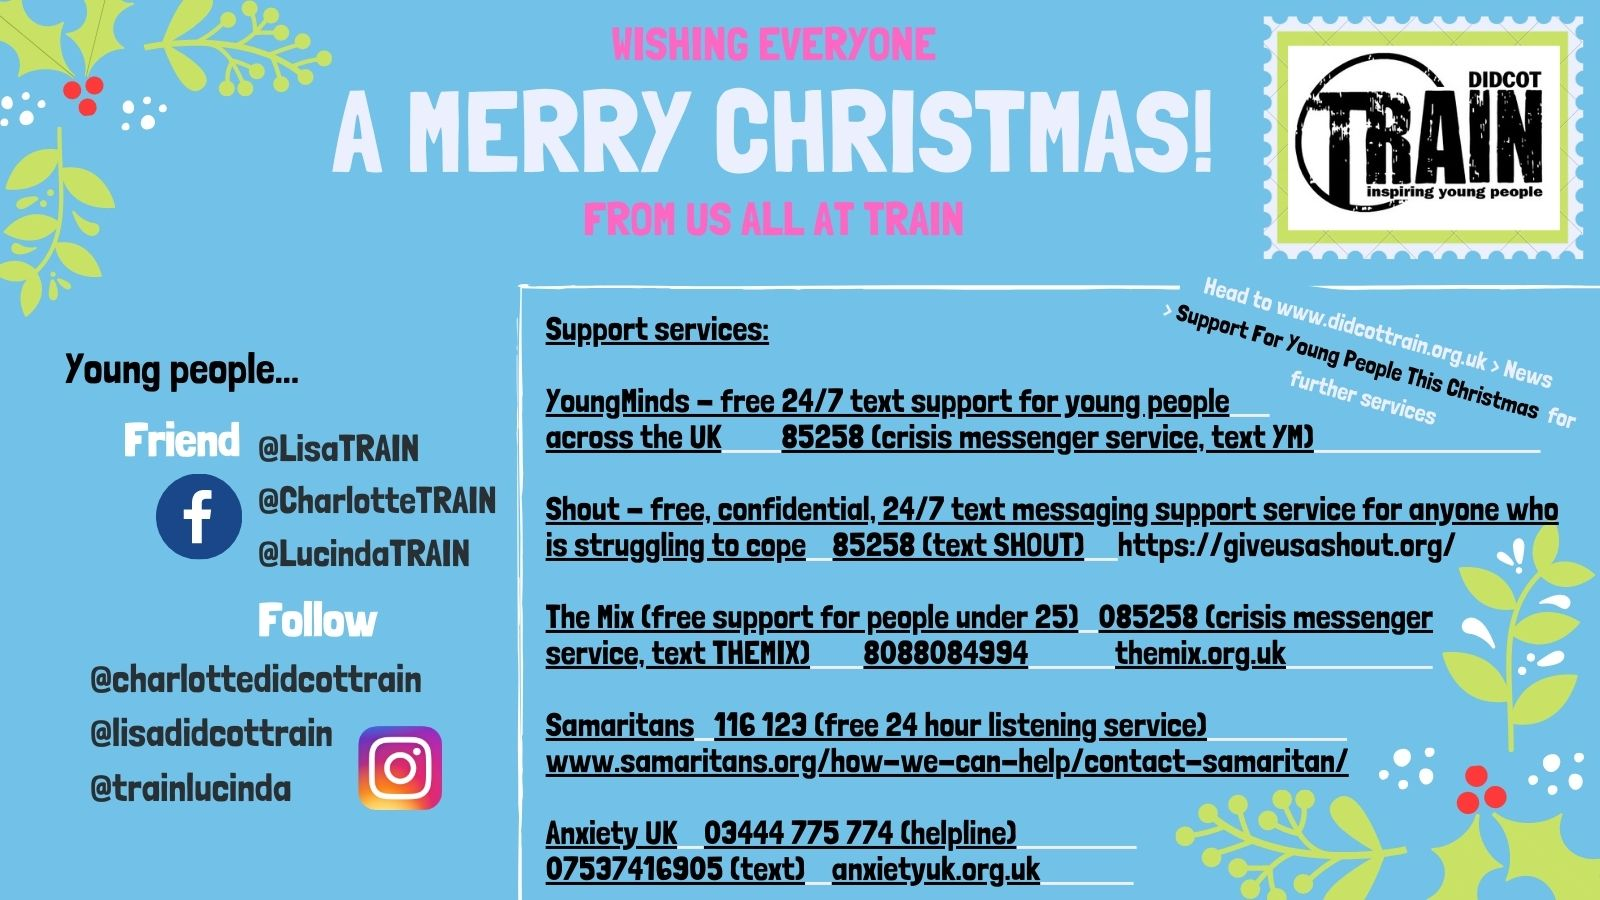 Support for young people this Christmas